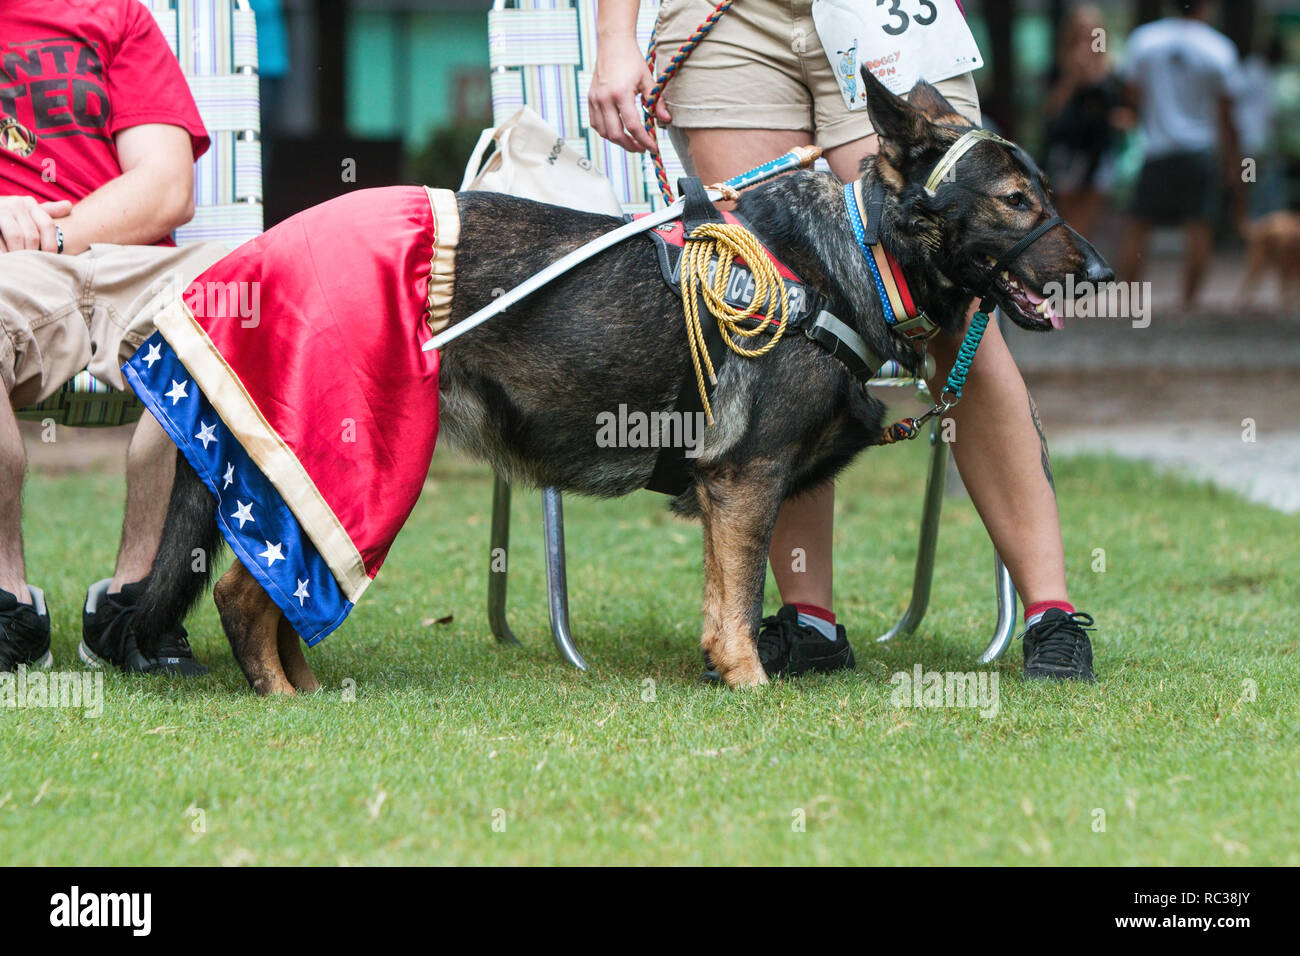 A dog wears a Wonder Woman costume at Doggy Con, a dog costume contest in Woodruff Park on August 18, 2018 in Atlanta, GA. - Stock Image